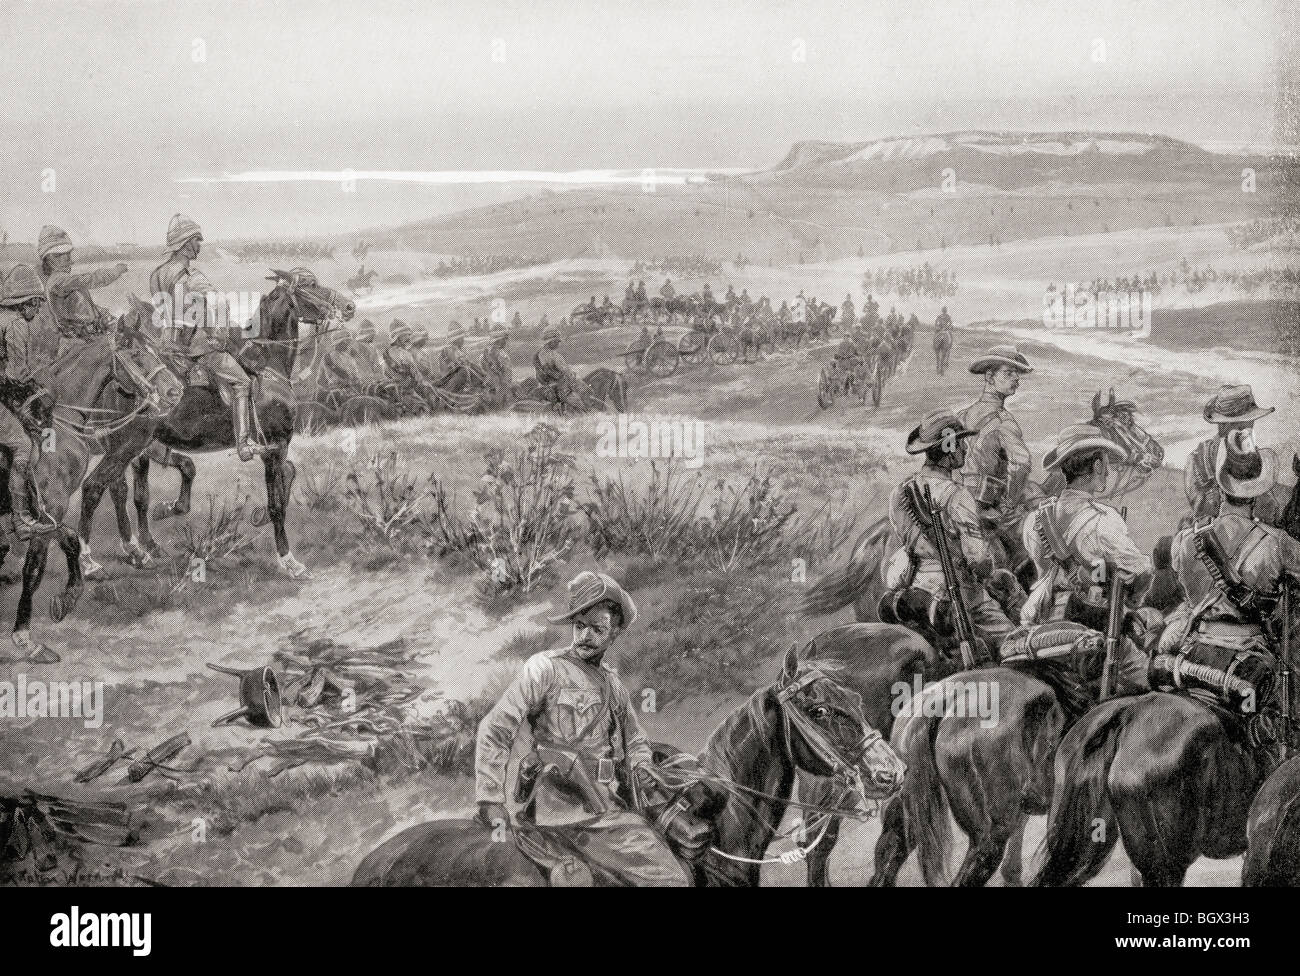 A reconnaissance in force with General French's cavalry near Colesberg, South Africa, during the second Boer - Stock Image